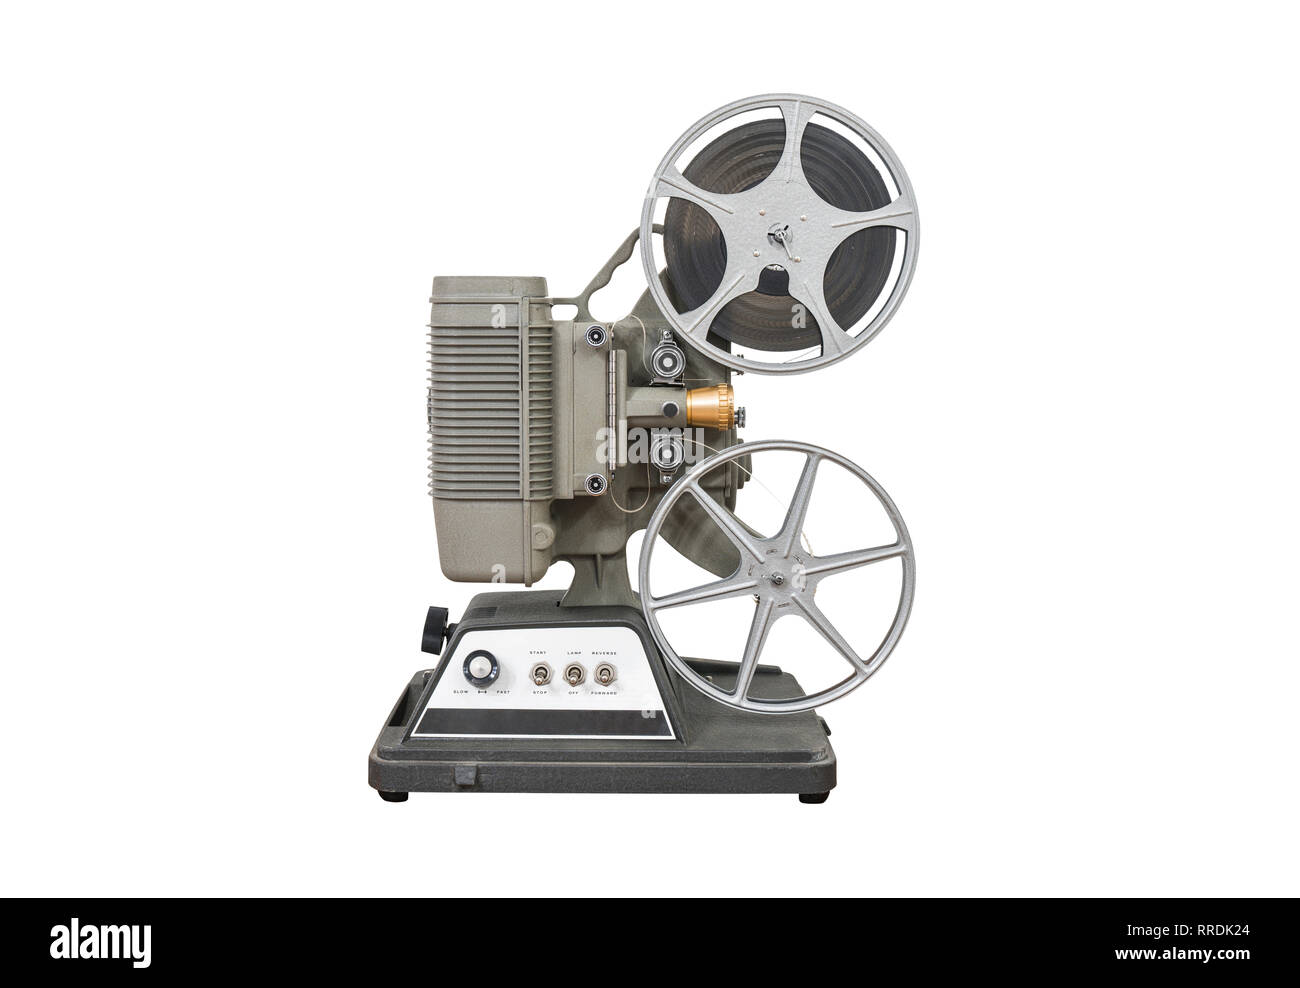 Vintage 8mm home movie film projector isolated on white